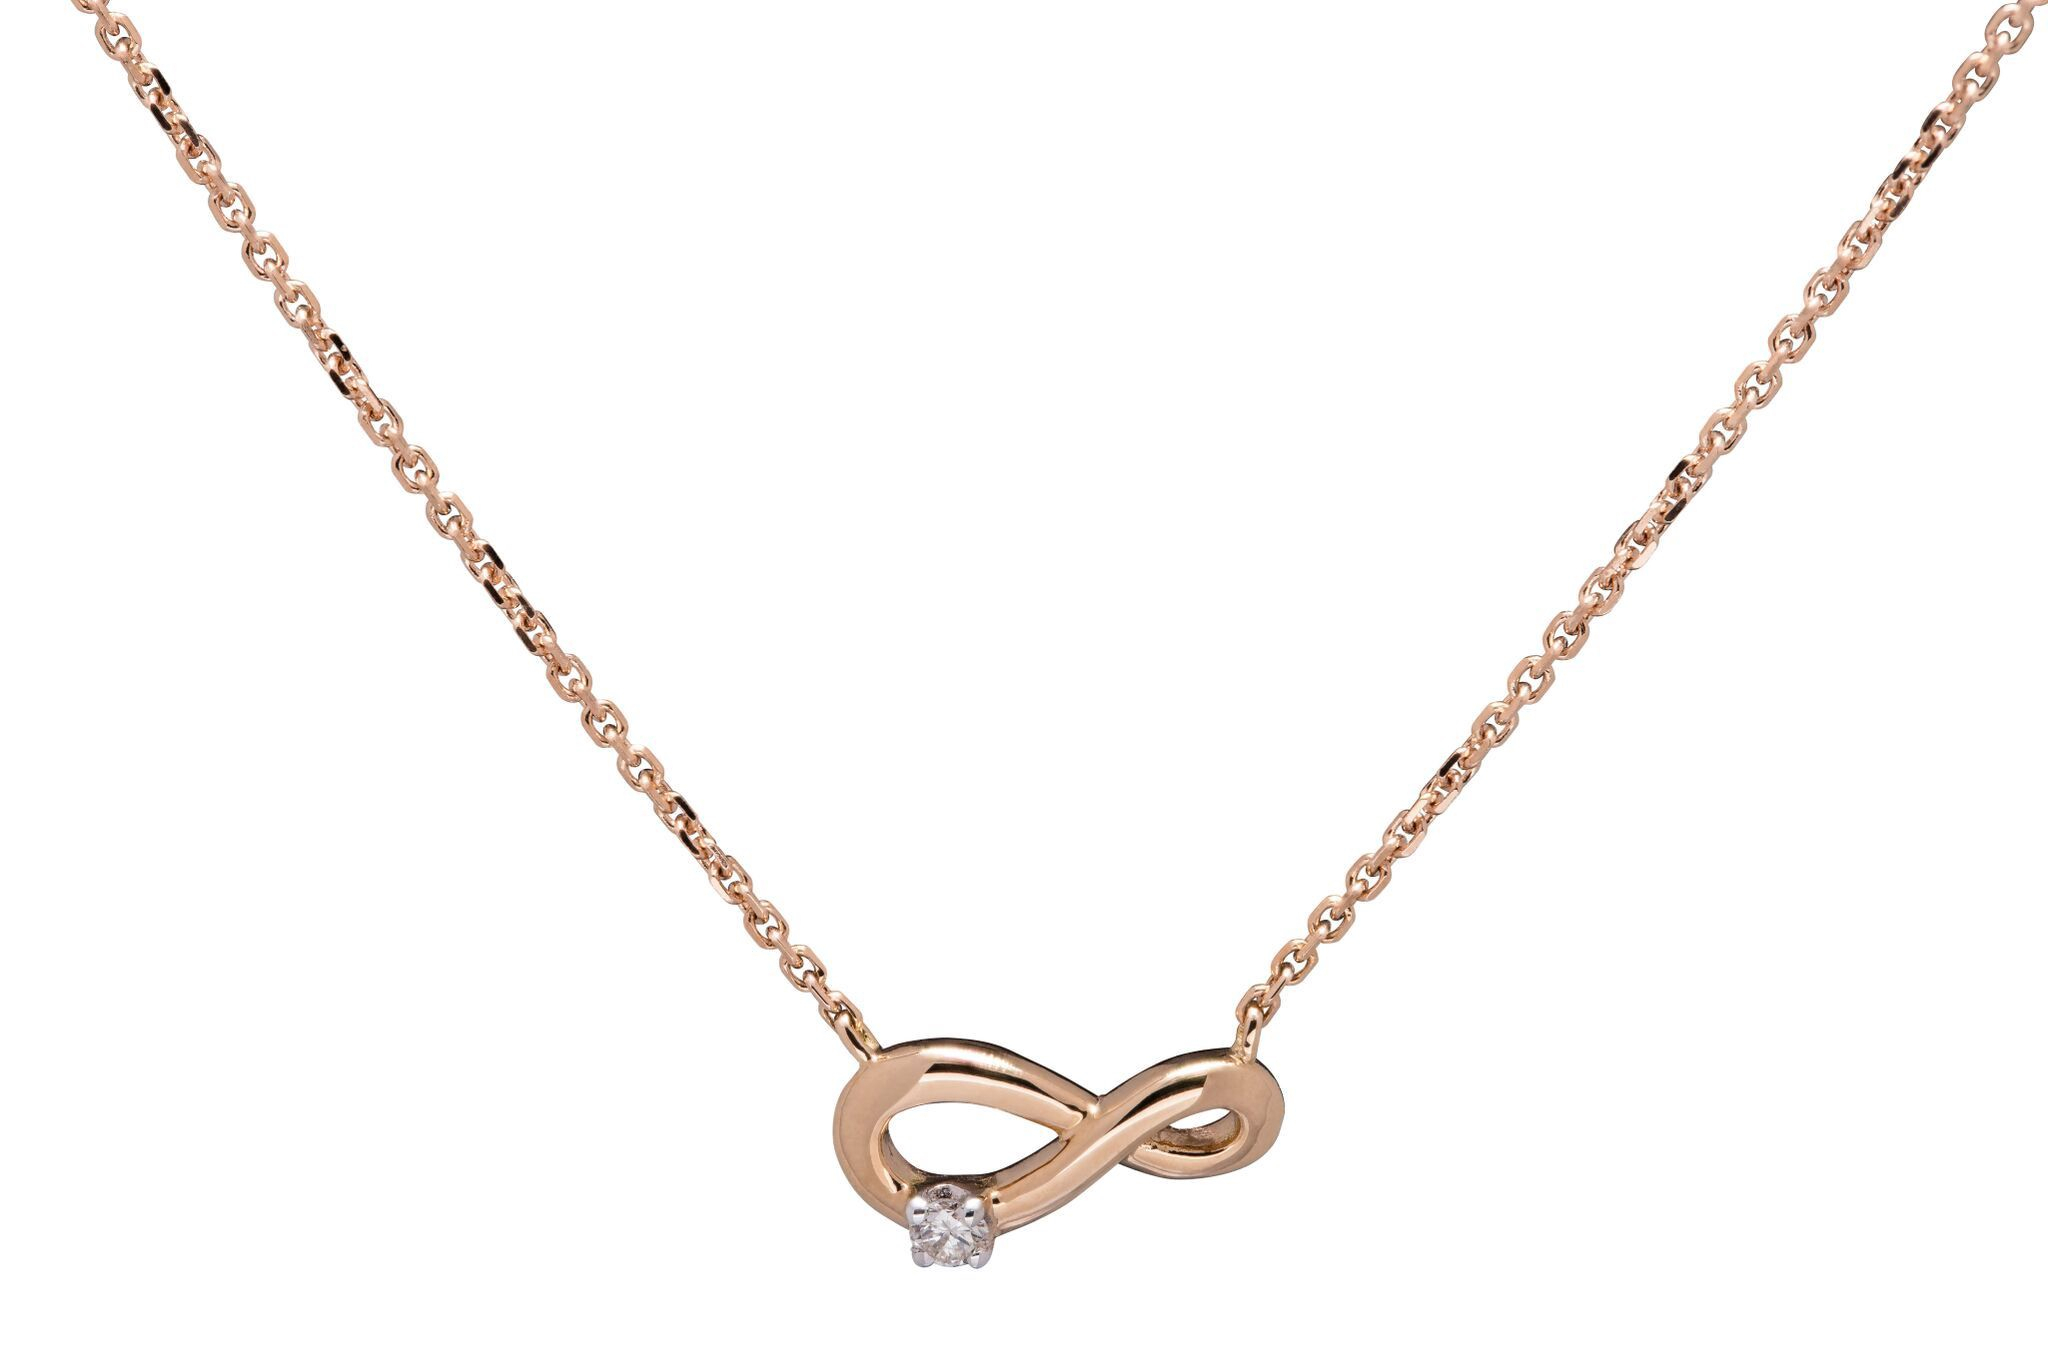 Shop Gold Diamond Necklace Online – Hortensiadelove – Medium Inside Latest Medium Diamond Necklaces (View 23 of 25)